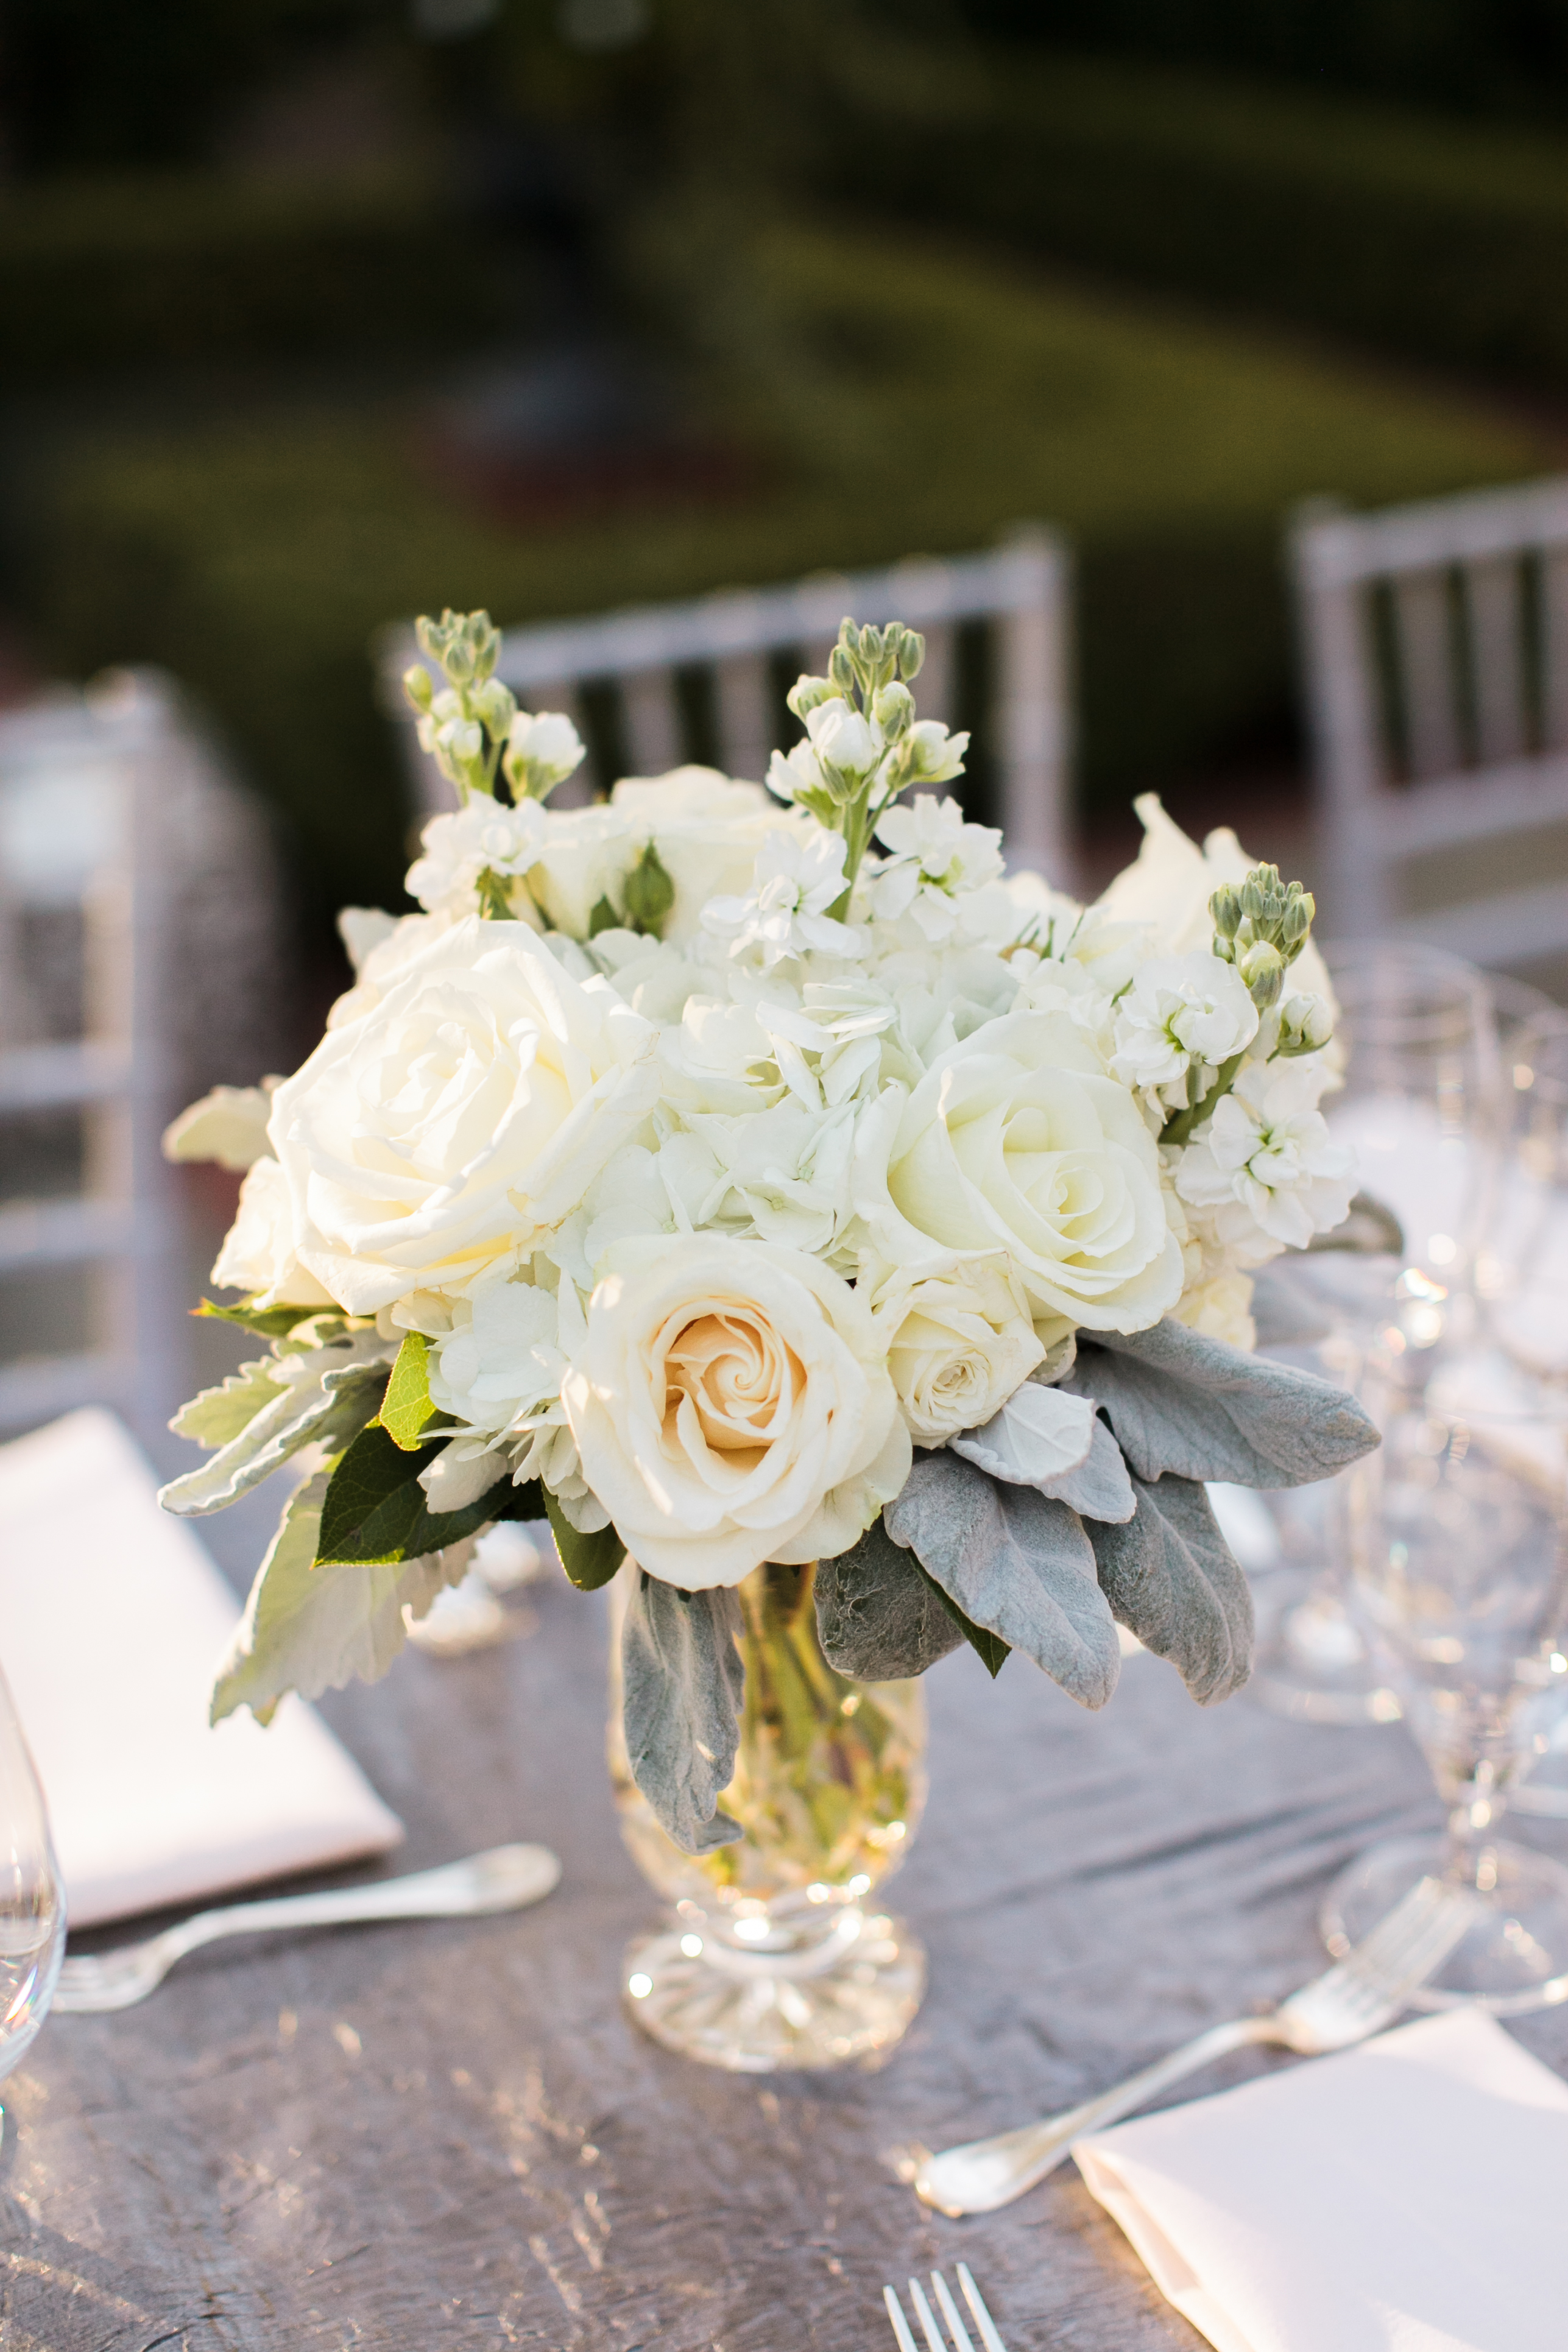 Flowers & Decor, Fashion, Real Weddings, Wedding Style, ivory, silver, Centerpieces, Fall Weddings, Southern Real Weddings, Classic Real Weddings, Fall Real Weddings, Classic Weddings, Garden Weddings, Classic Wedding Flowers & Decor, Roses, Colors, Southern weddings